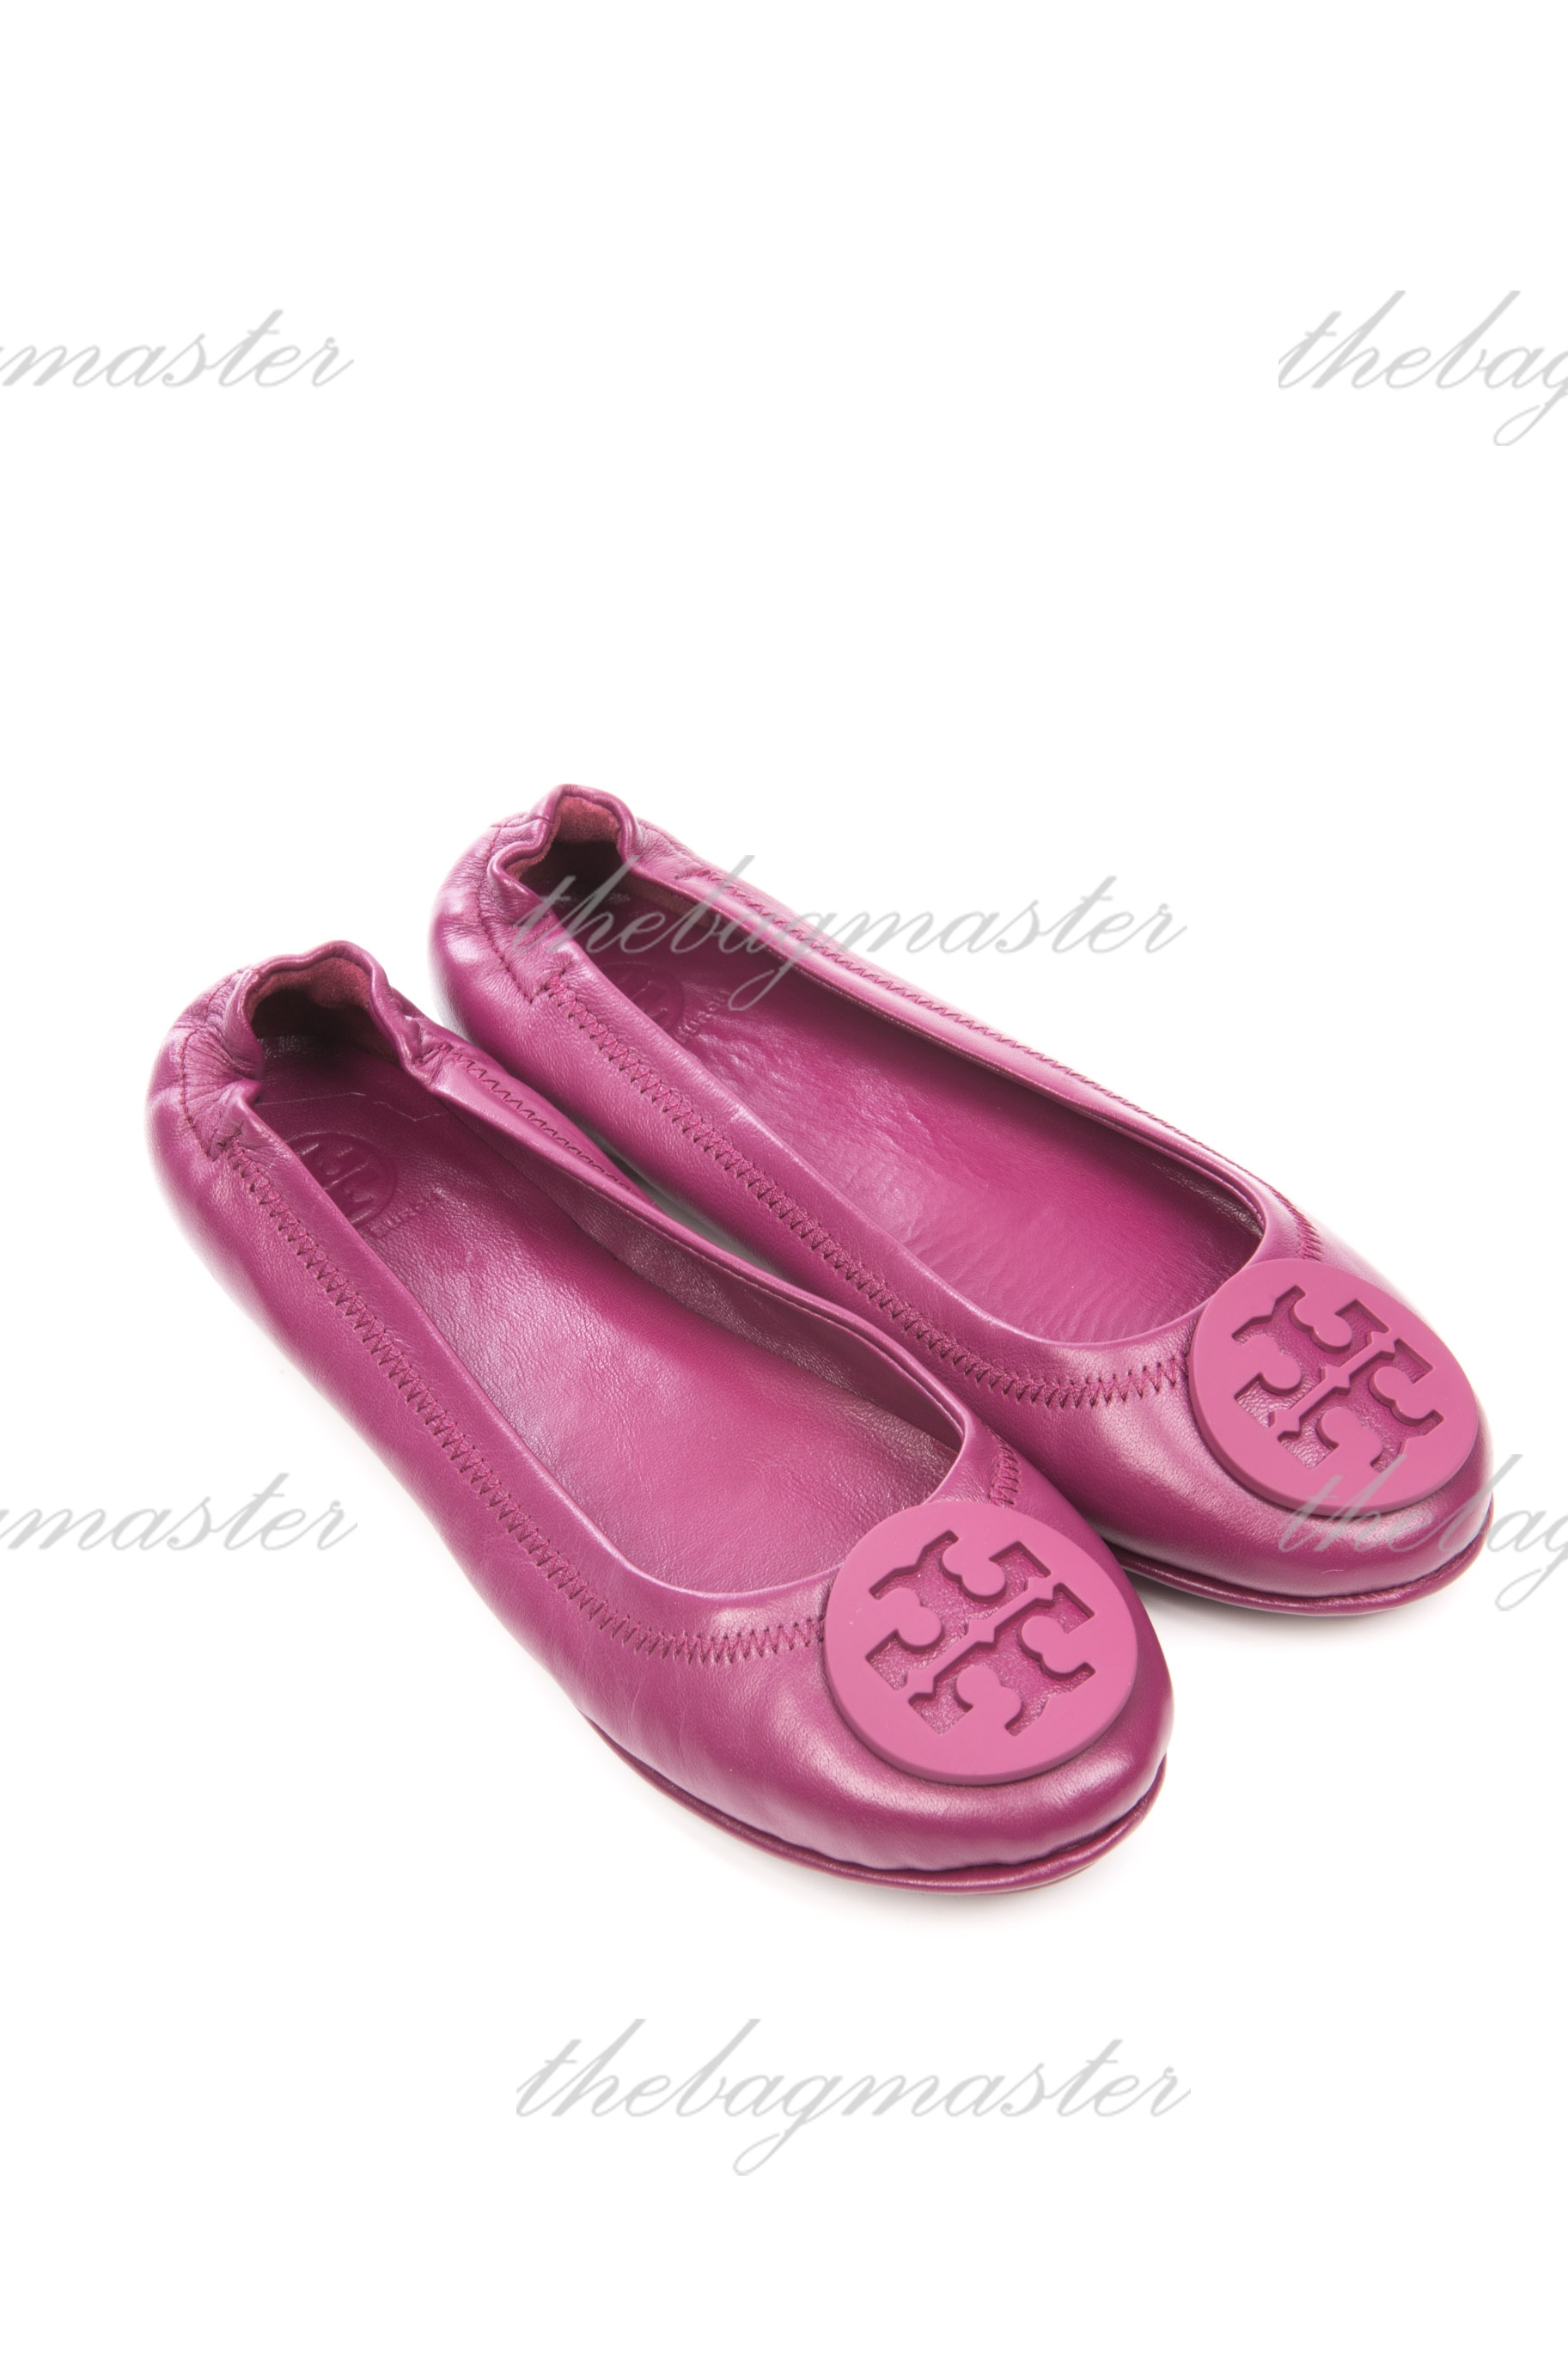 018646858c73 Tory Burch Minnie Travel Logo Ballerina Flat - Shiraz (Size 6) — The ...